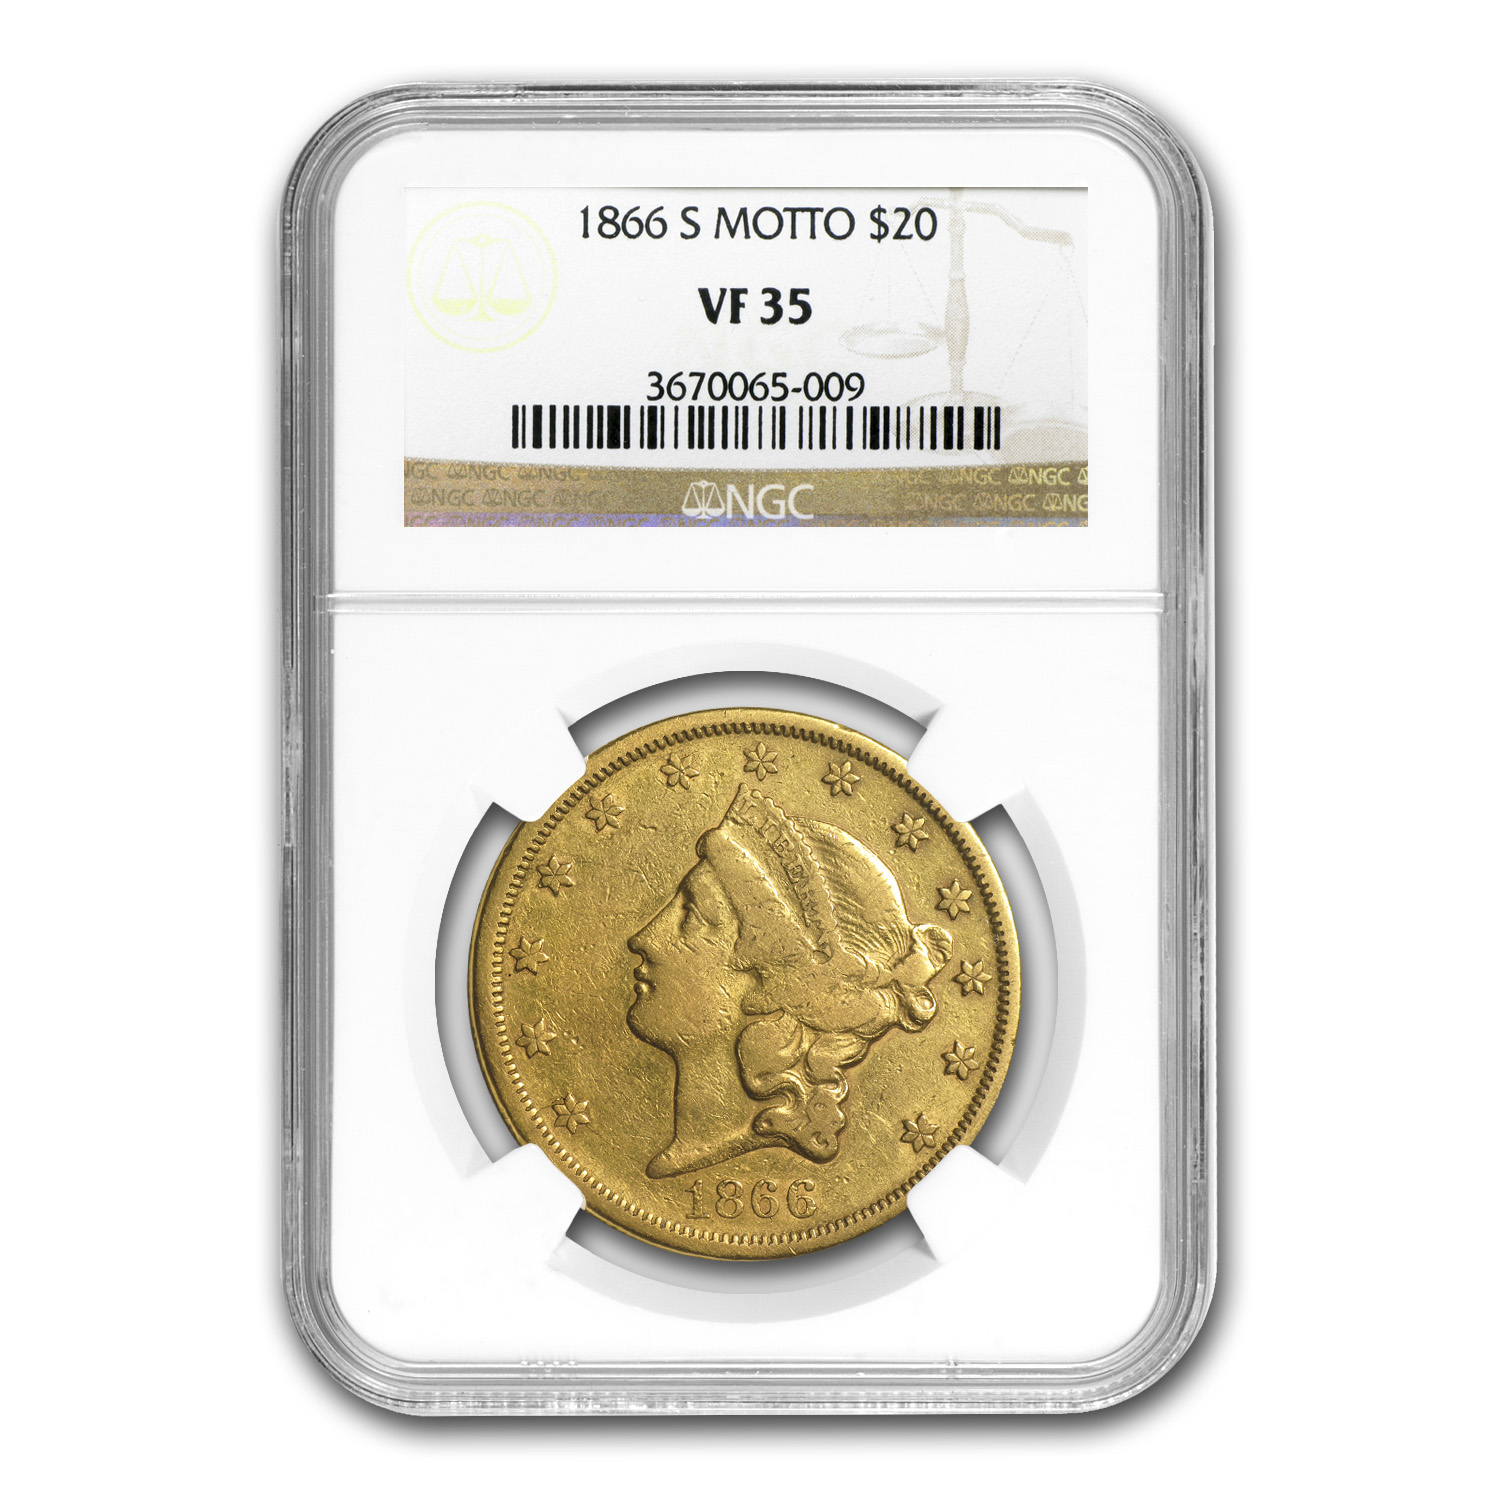 1866-S $20 Liberty Gold Double Eagle w/Motto VF-35 NGC